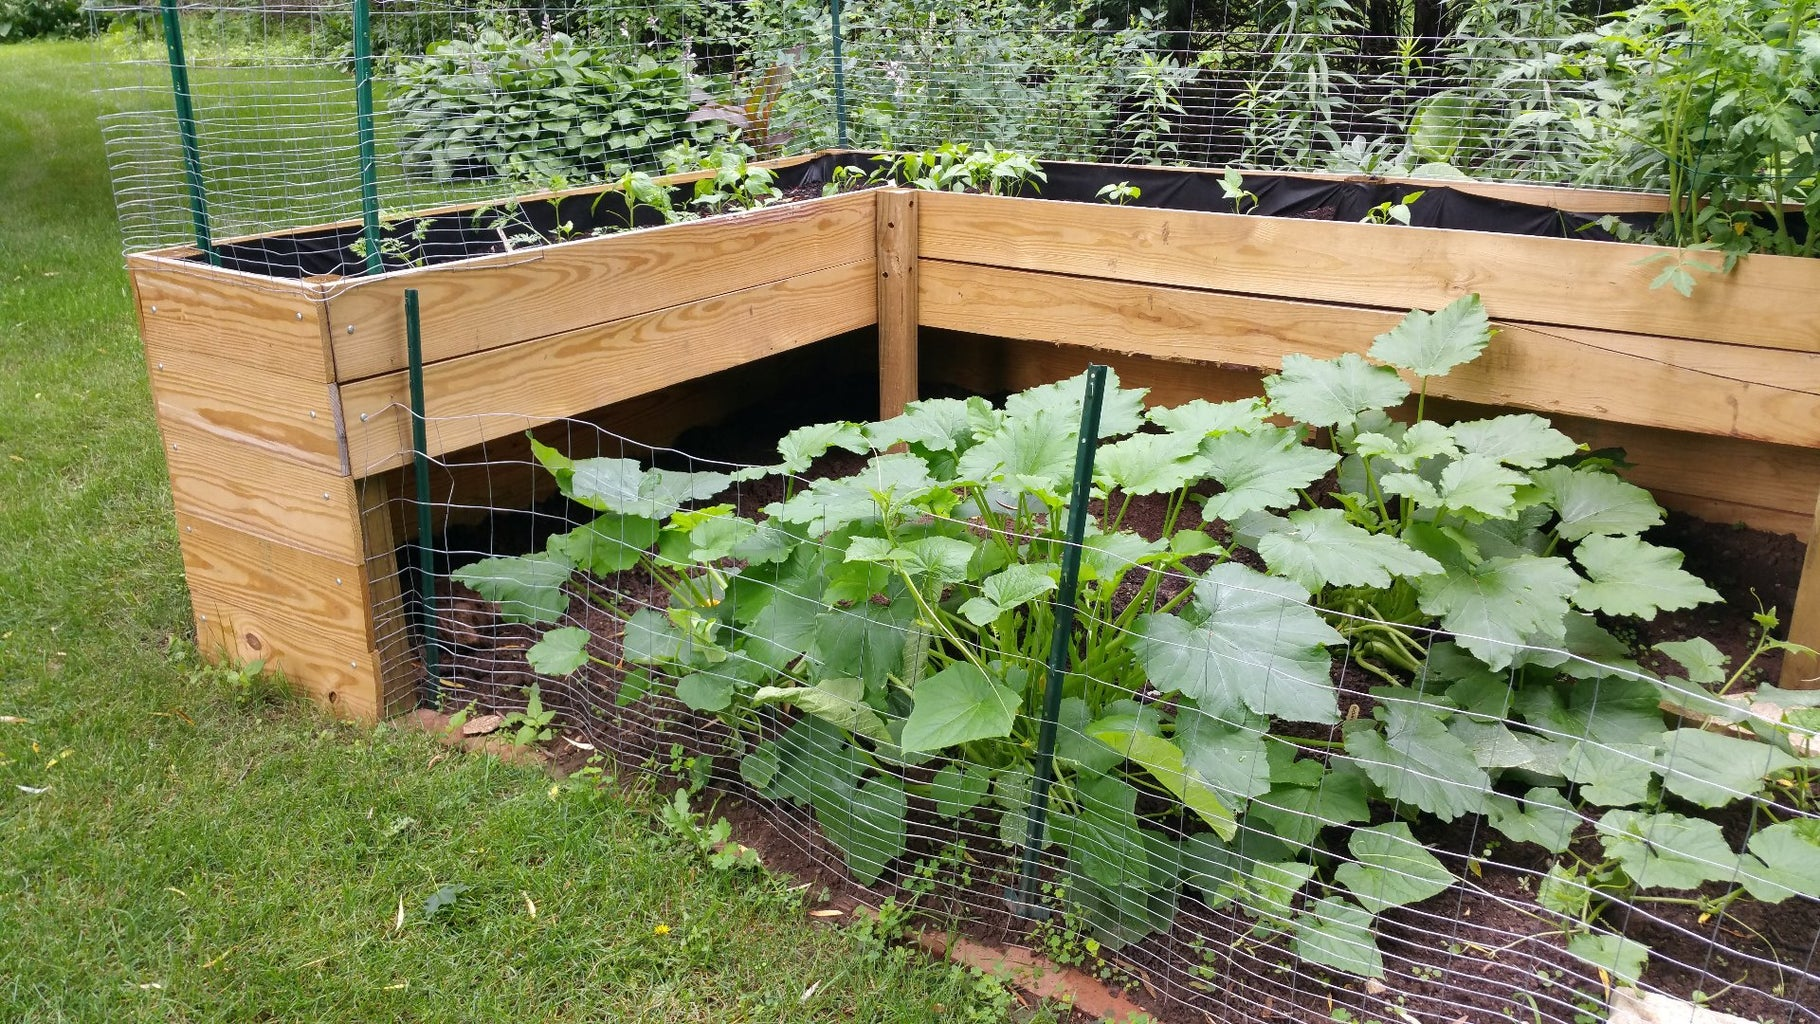 Prepare Your Garden Area and Plot Out the Location of the Exterior